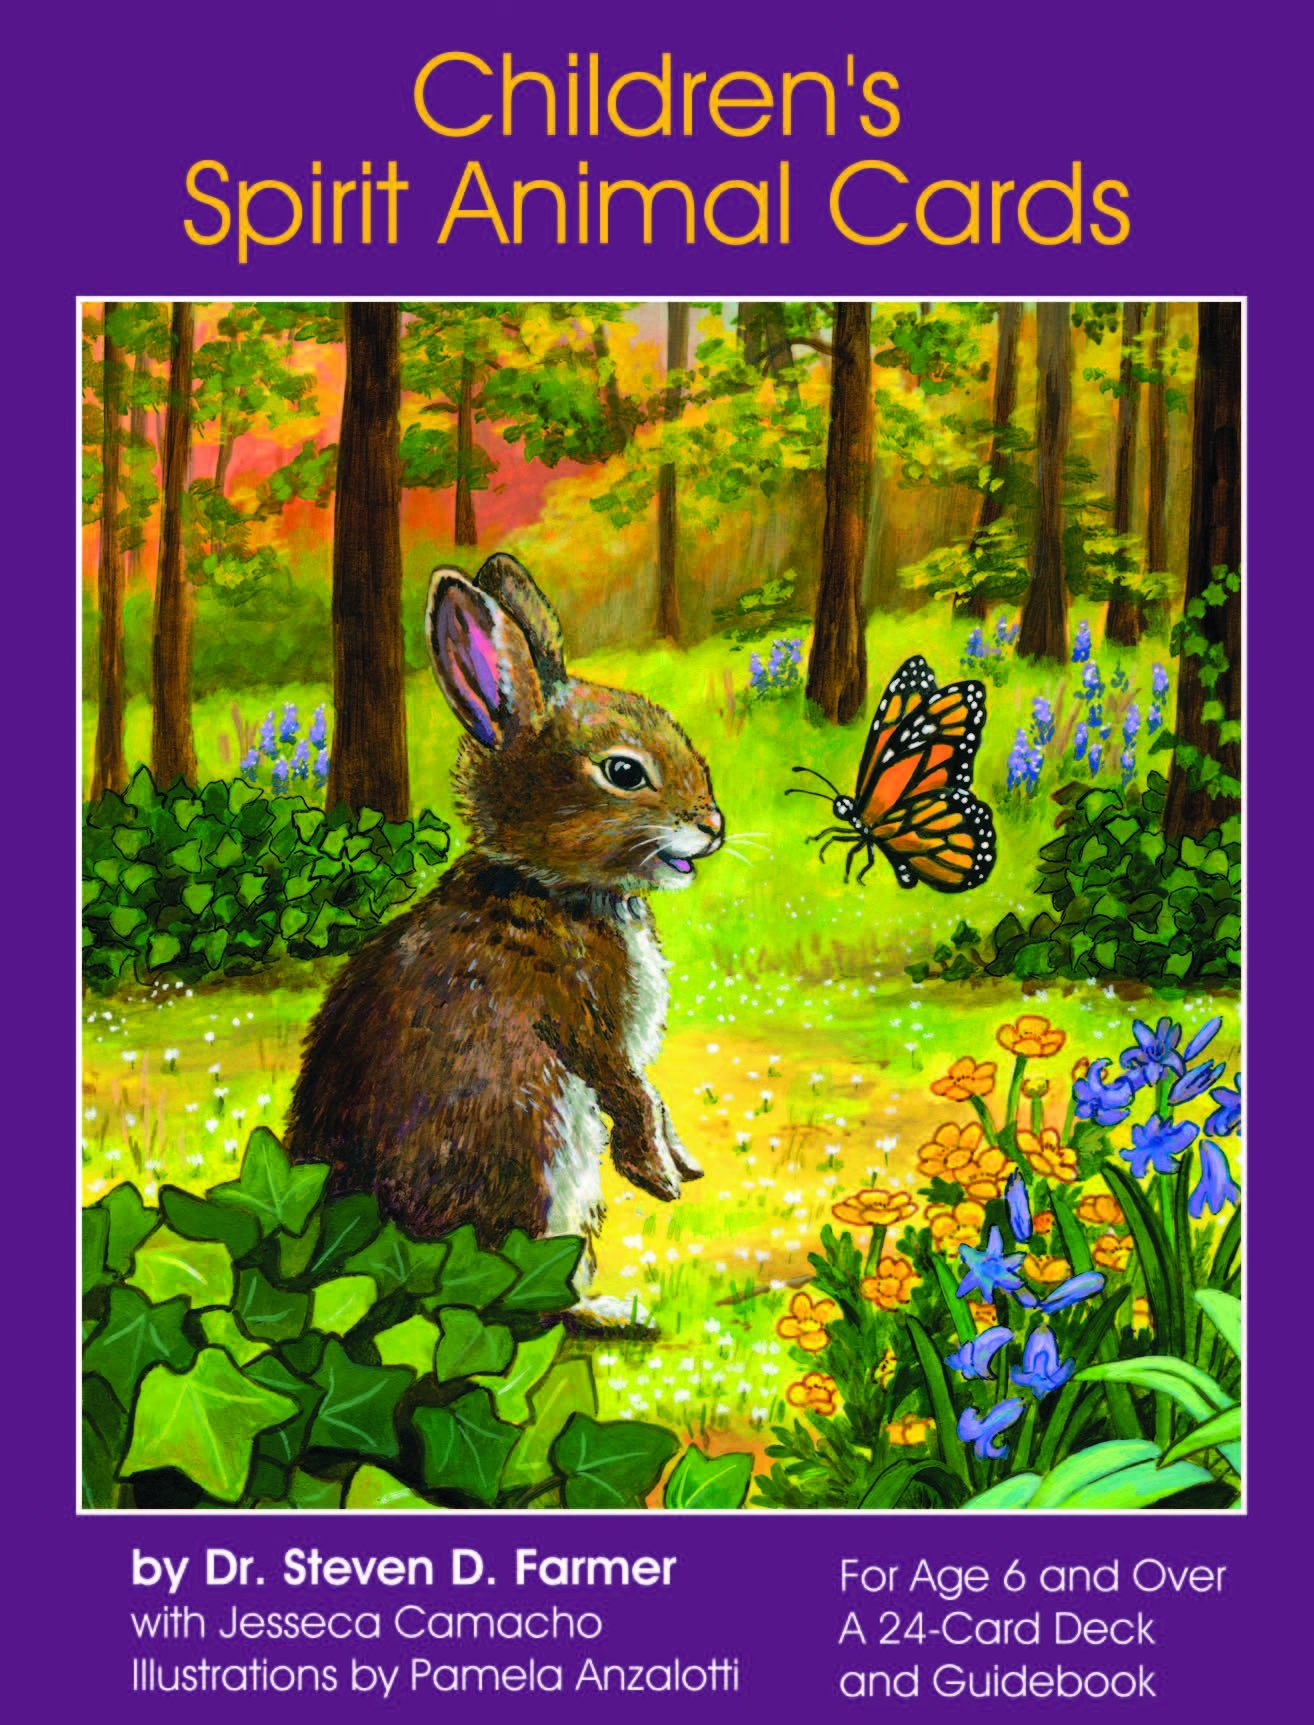 Cartas oraculo Childrens Spirit Animal [Importadas] xsr